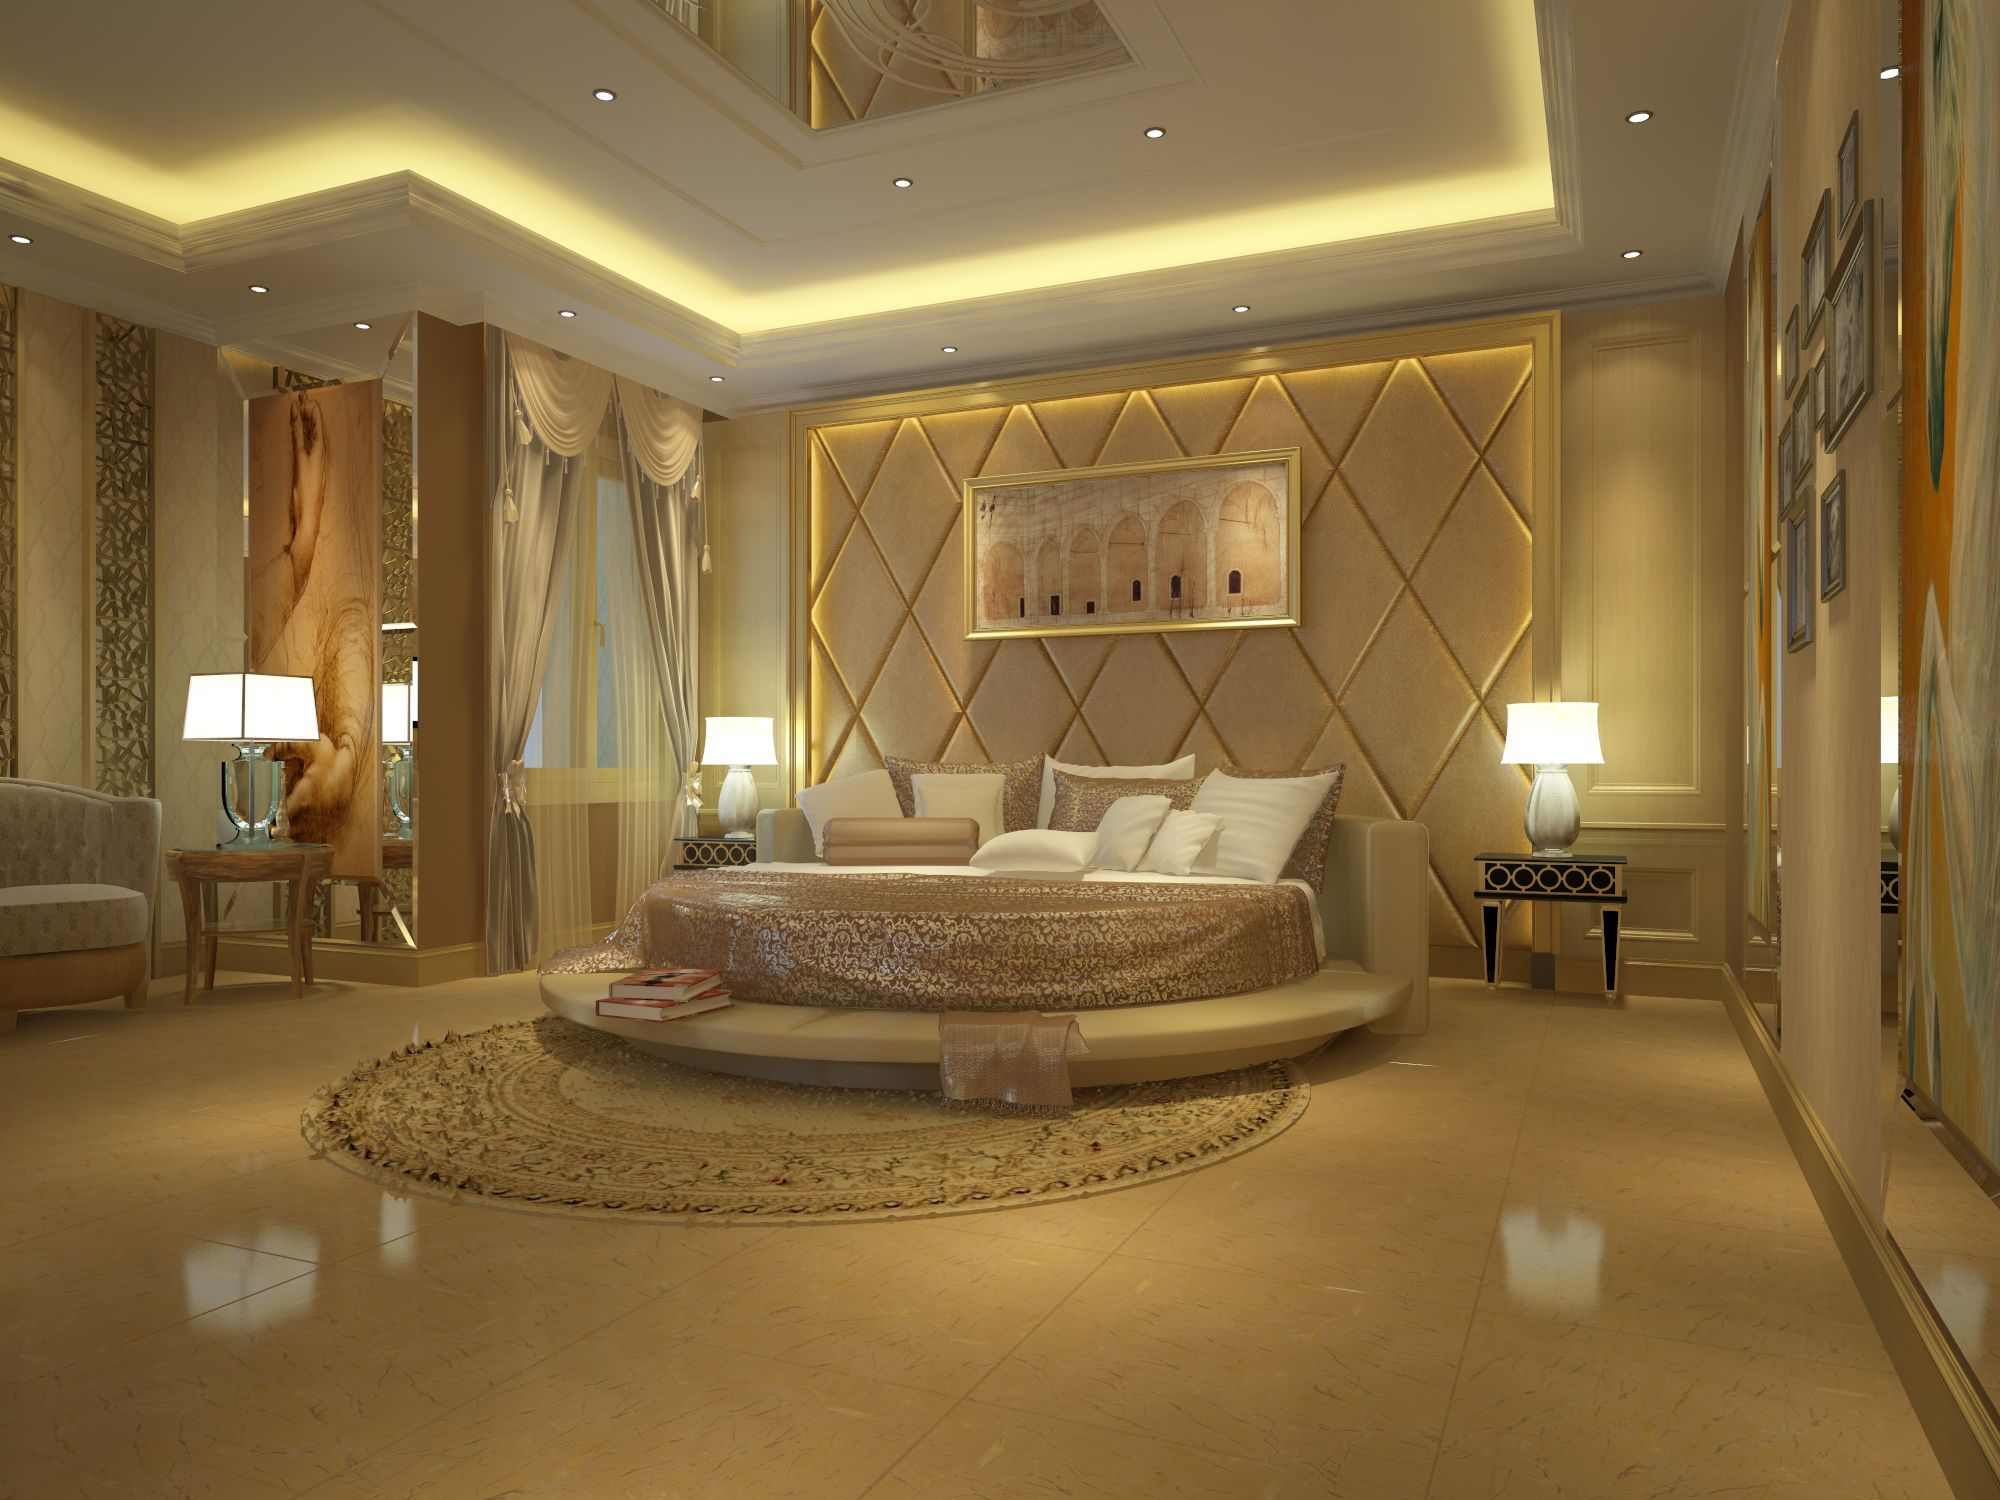 Unique master bedrooms - 30 Romantic Master Bedroom Designs